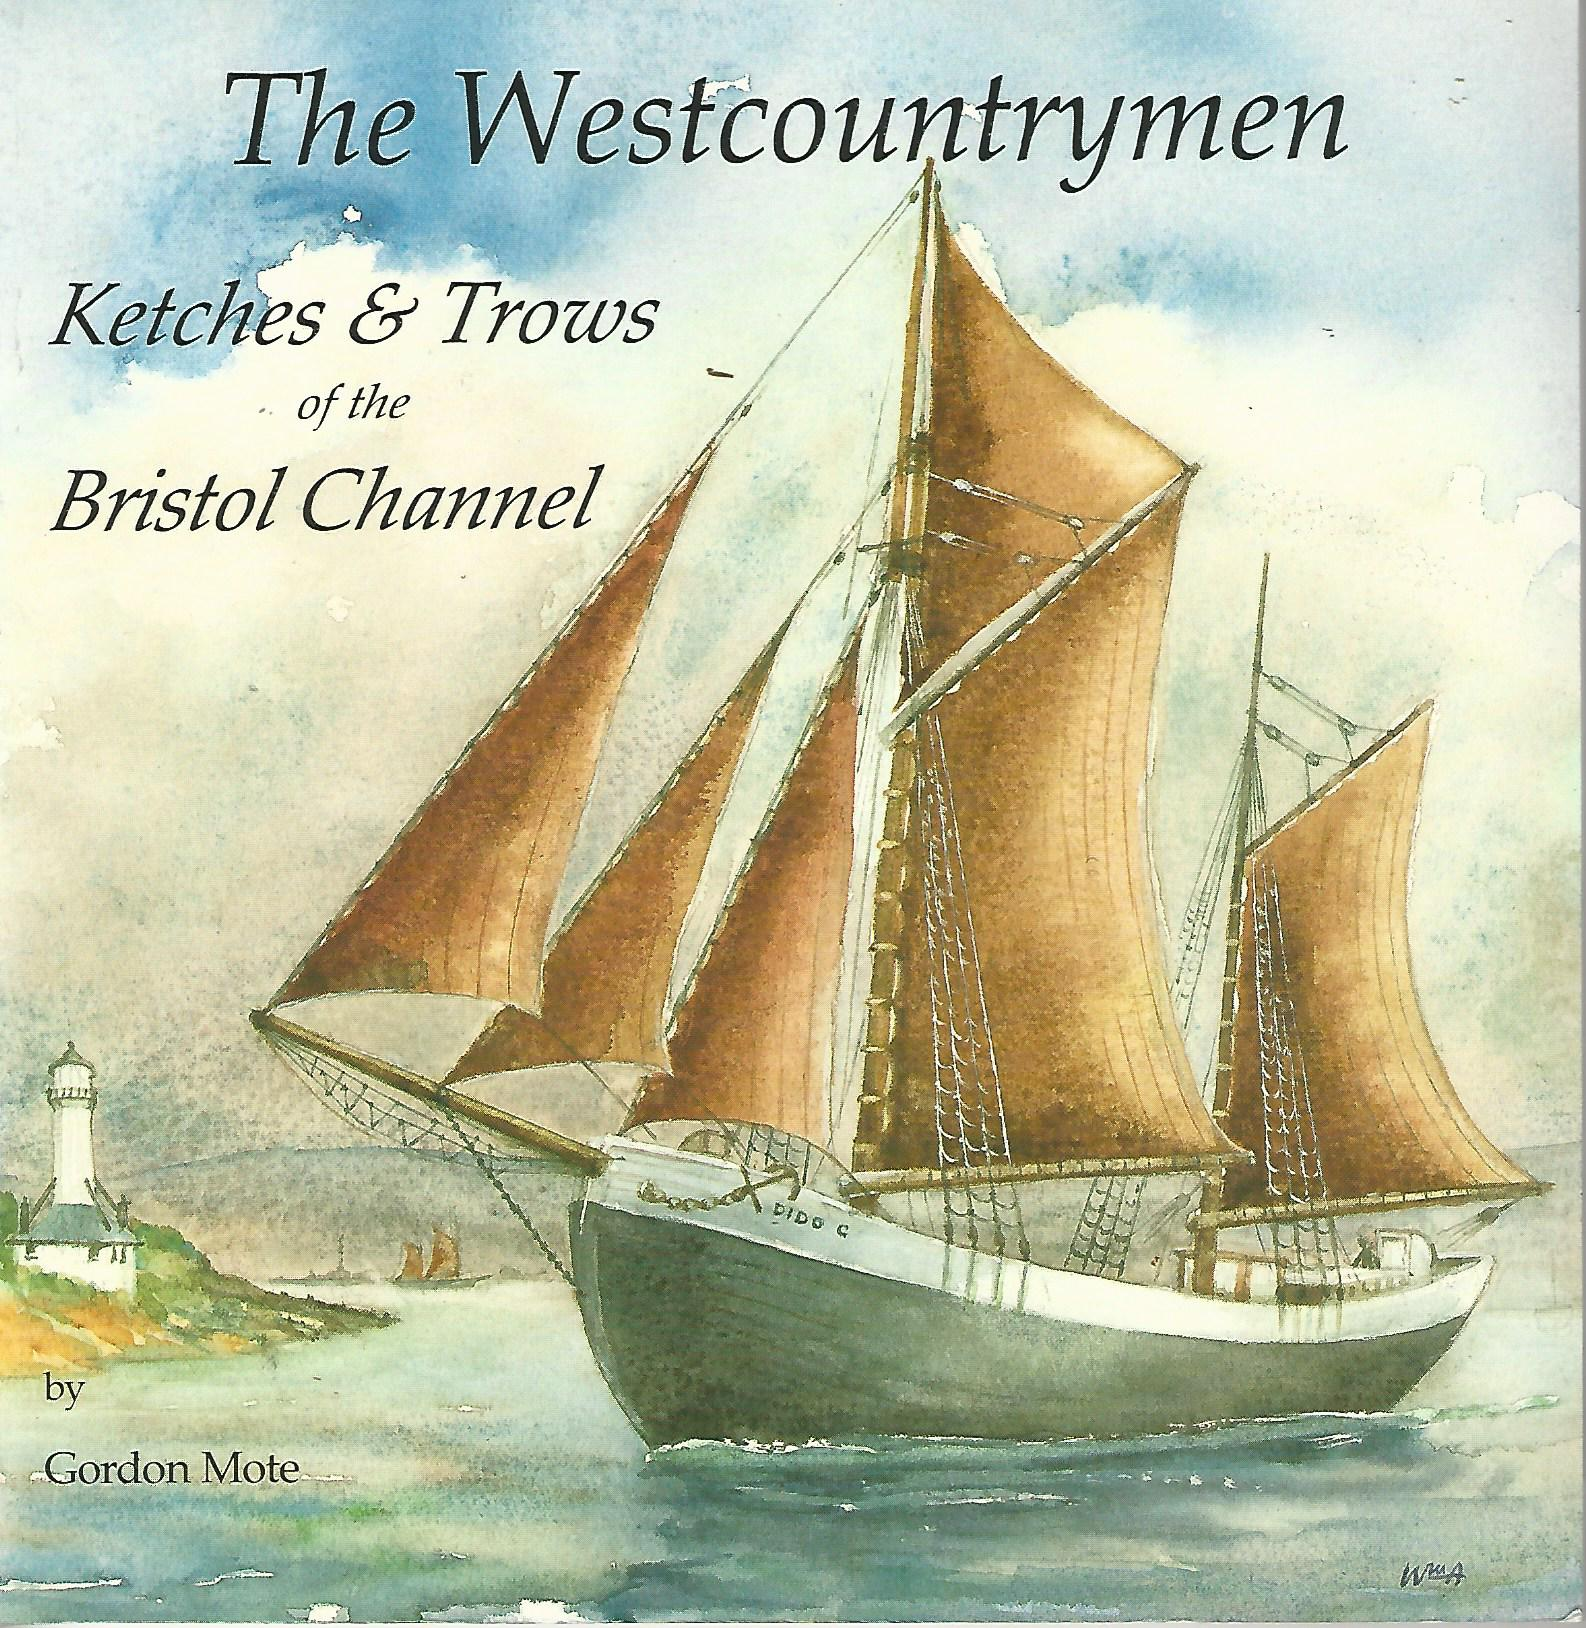 Image for The Westcountrymen: Ketches and Trows of the Bristol Channel.